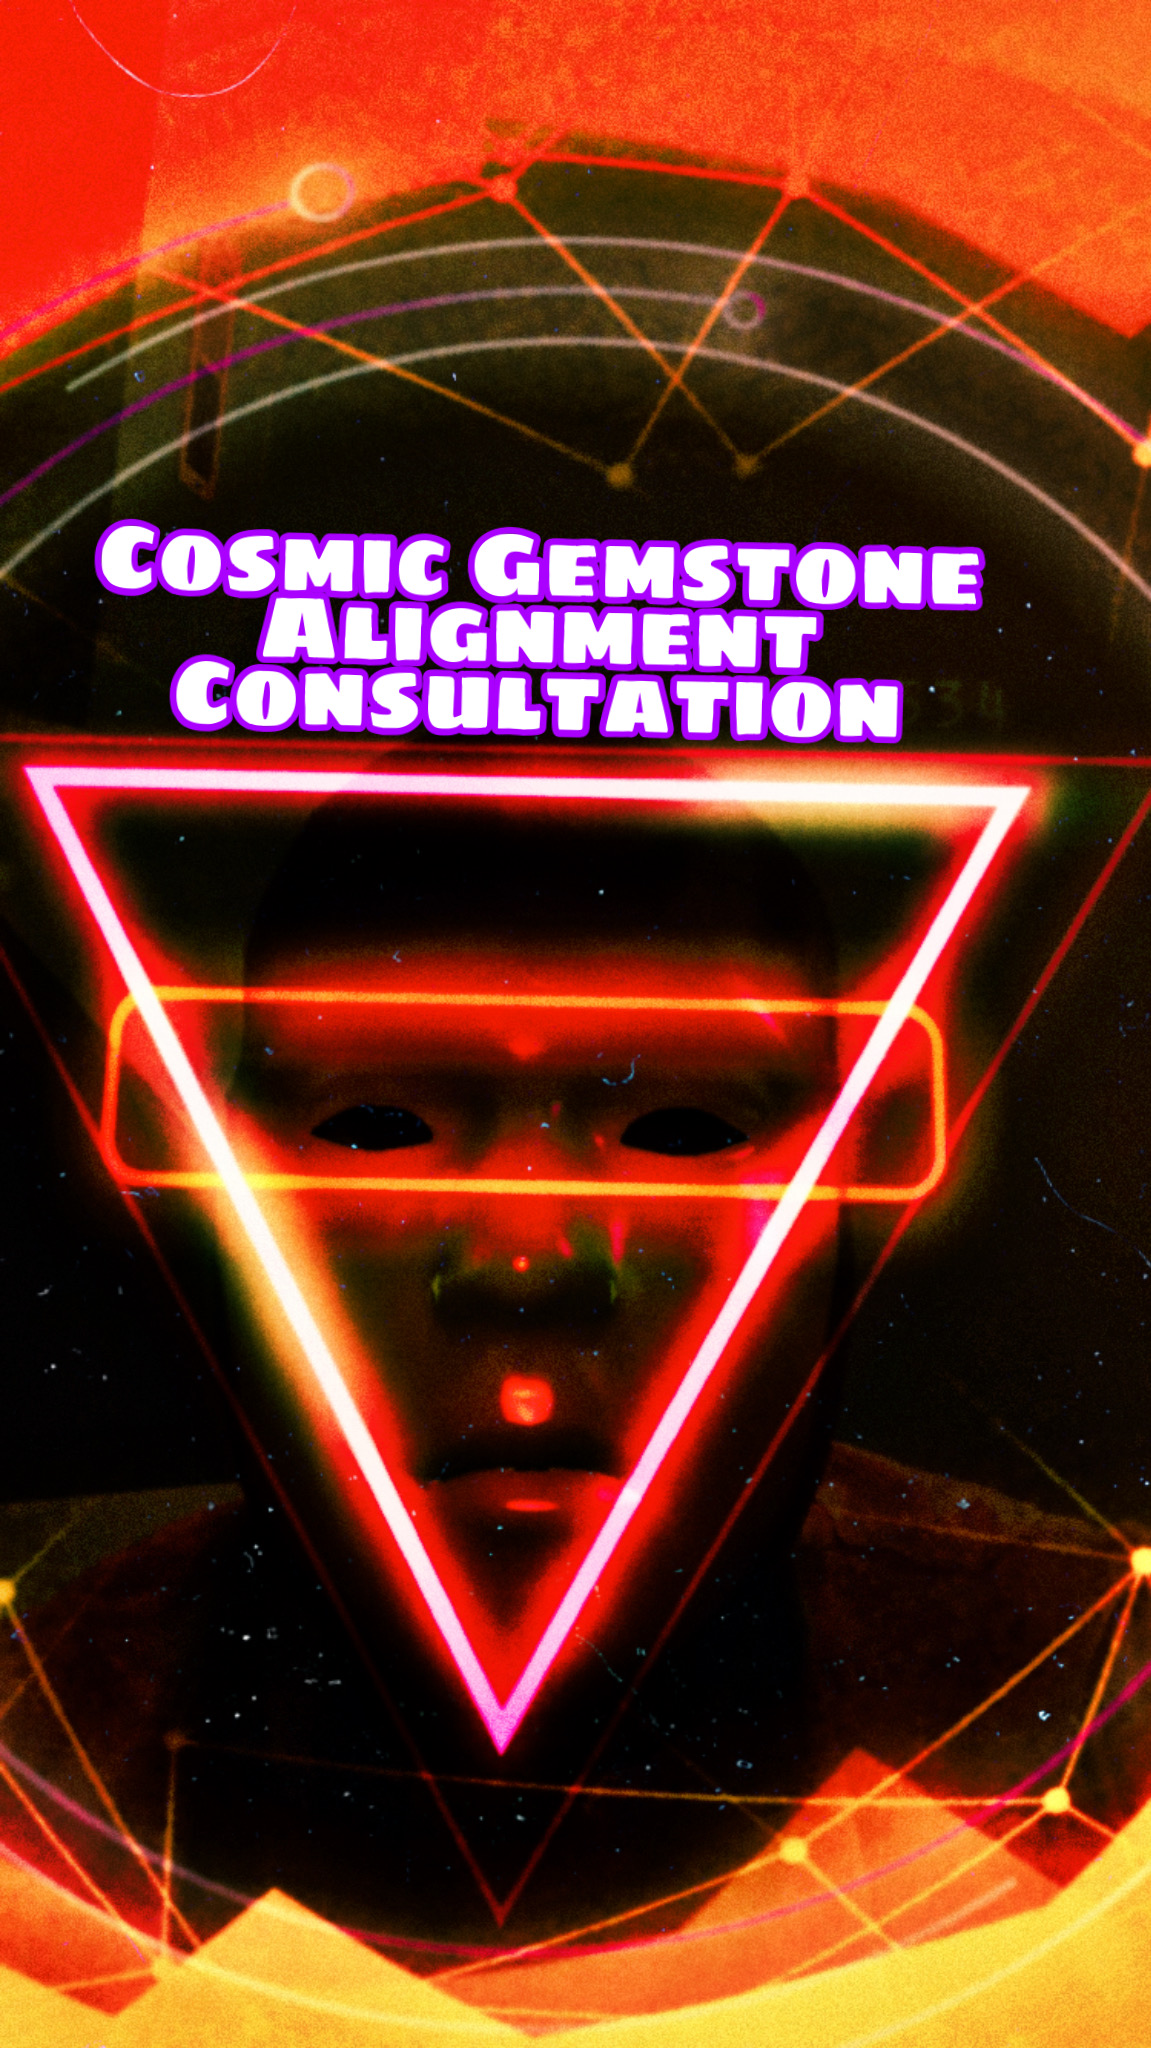 Cosmic gemstone alignment consultation